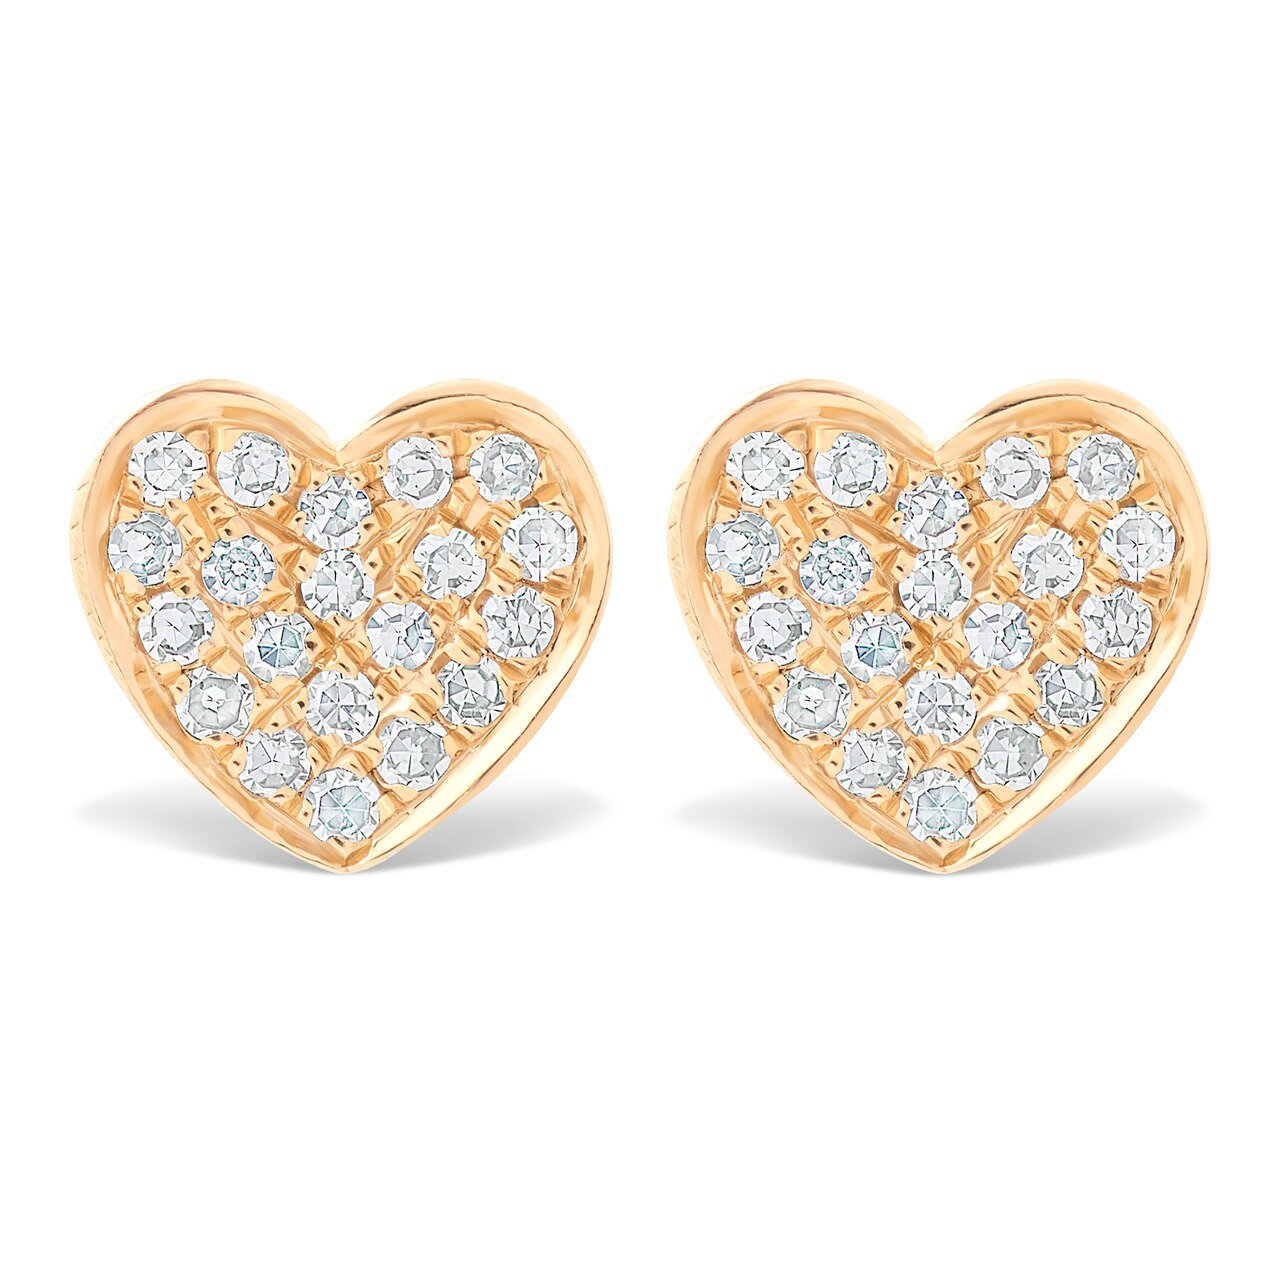 Mini Pave Diamond Heart Earrings